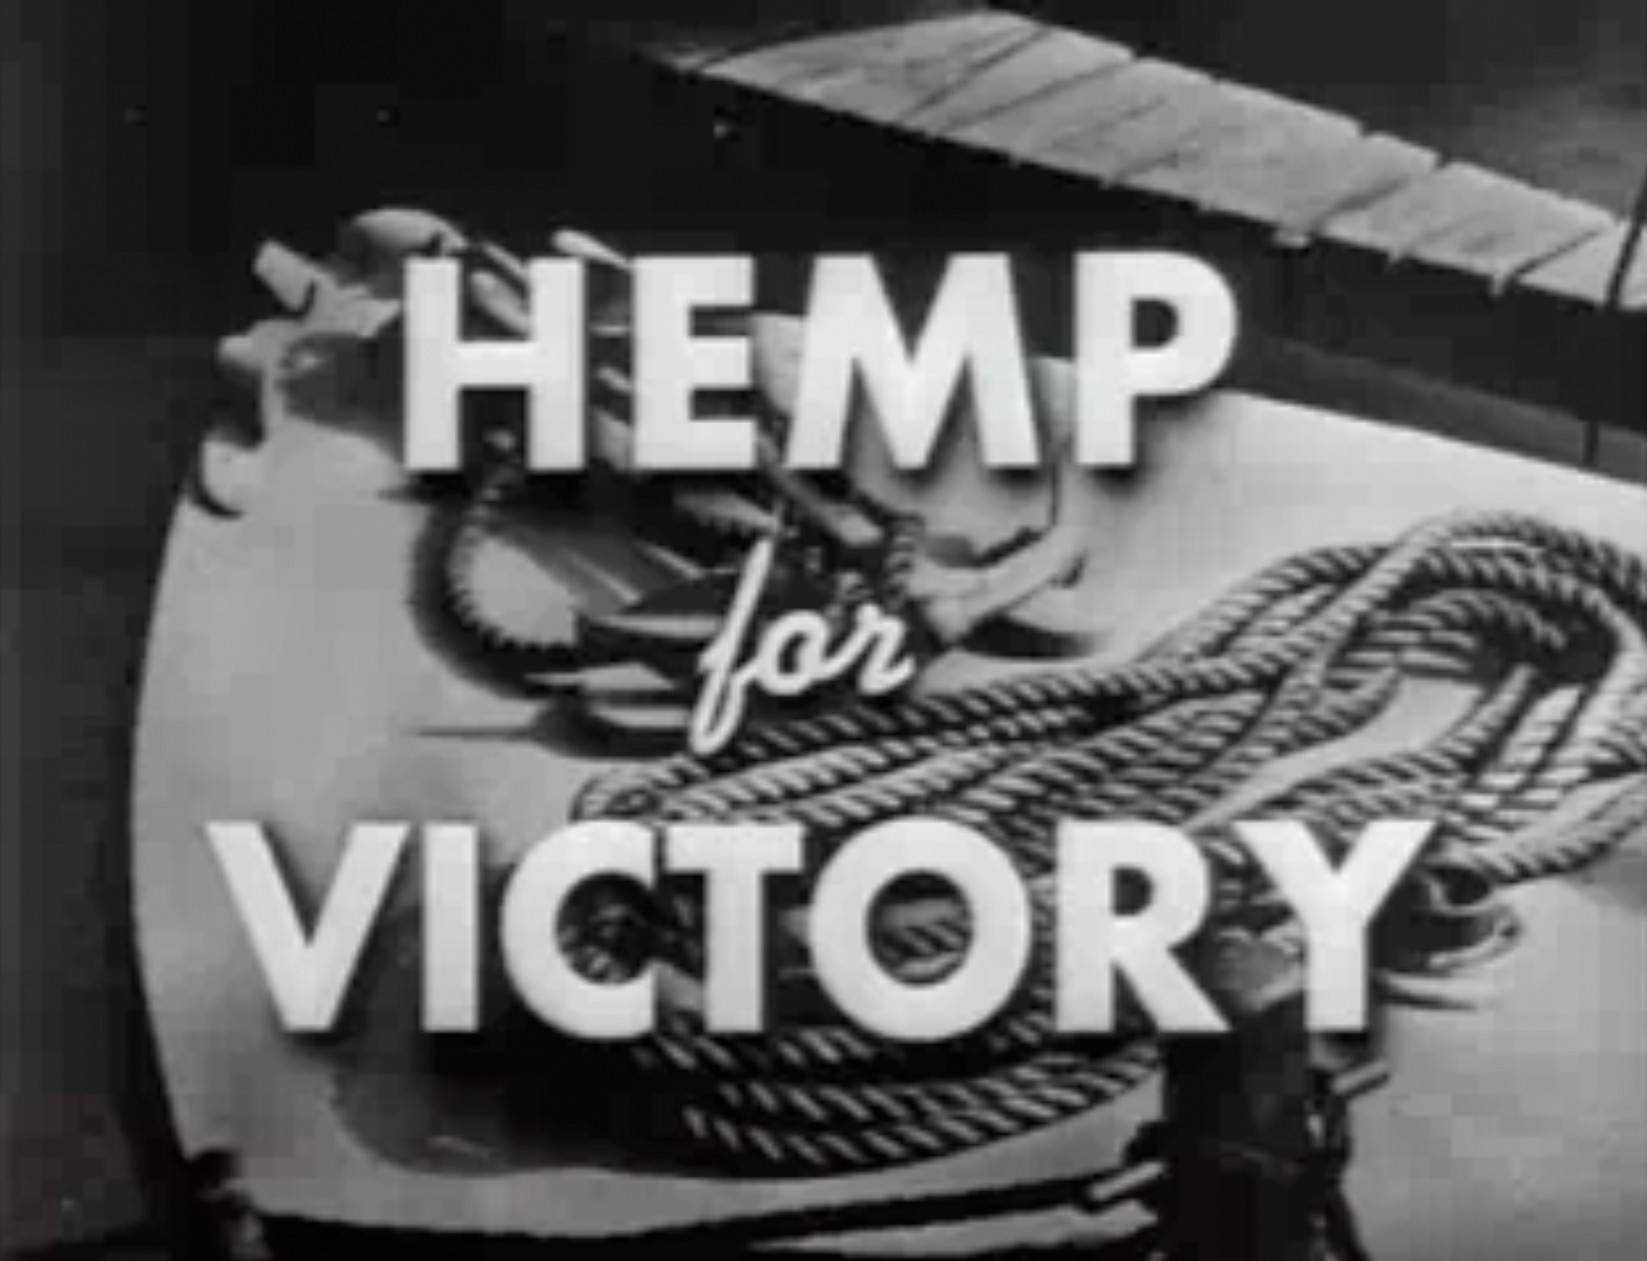 A film produced by the U.S. Department of Agriculture during World War II encouraged American farmers to show their patriotism by growing hemp, which was used to make a variety of military products.